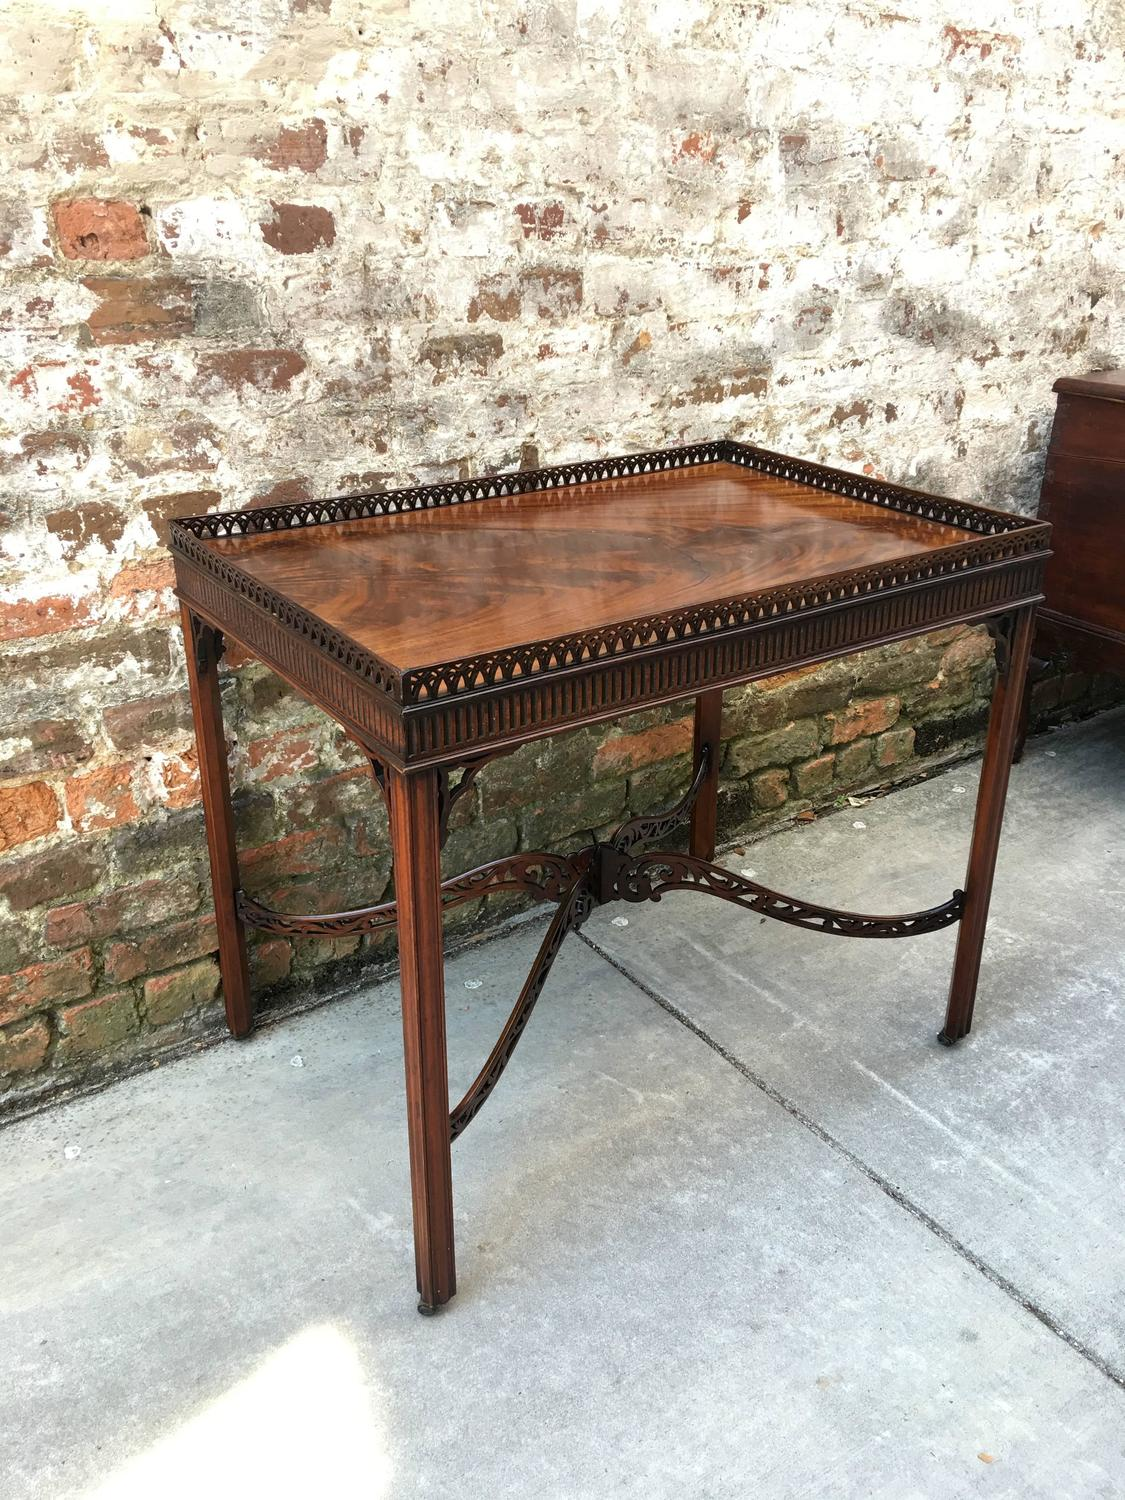 Gallery 1 Furniture Centre English 18th Century Silver Table With Pierced Gallery And